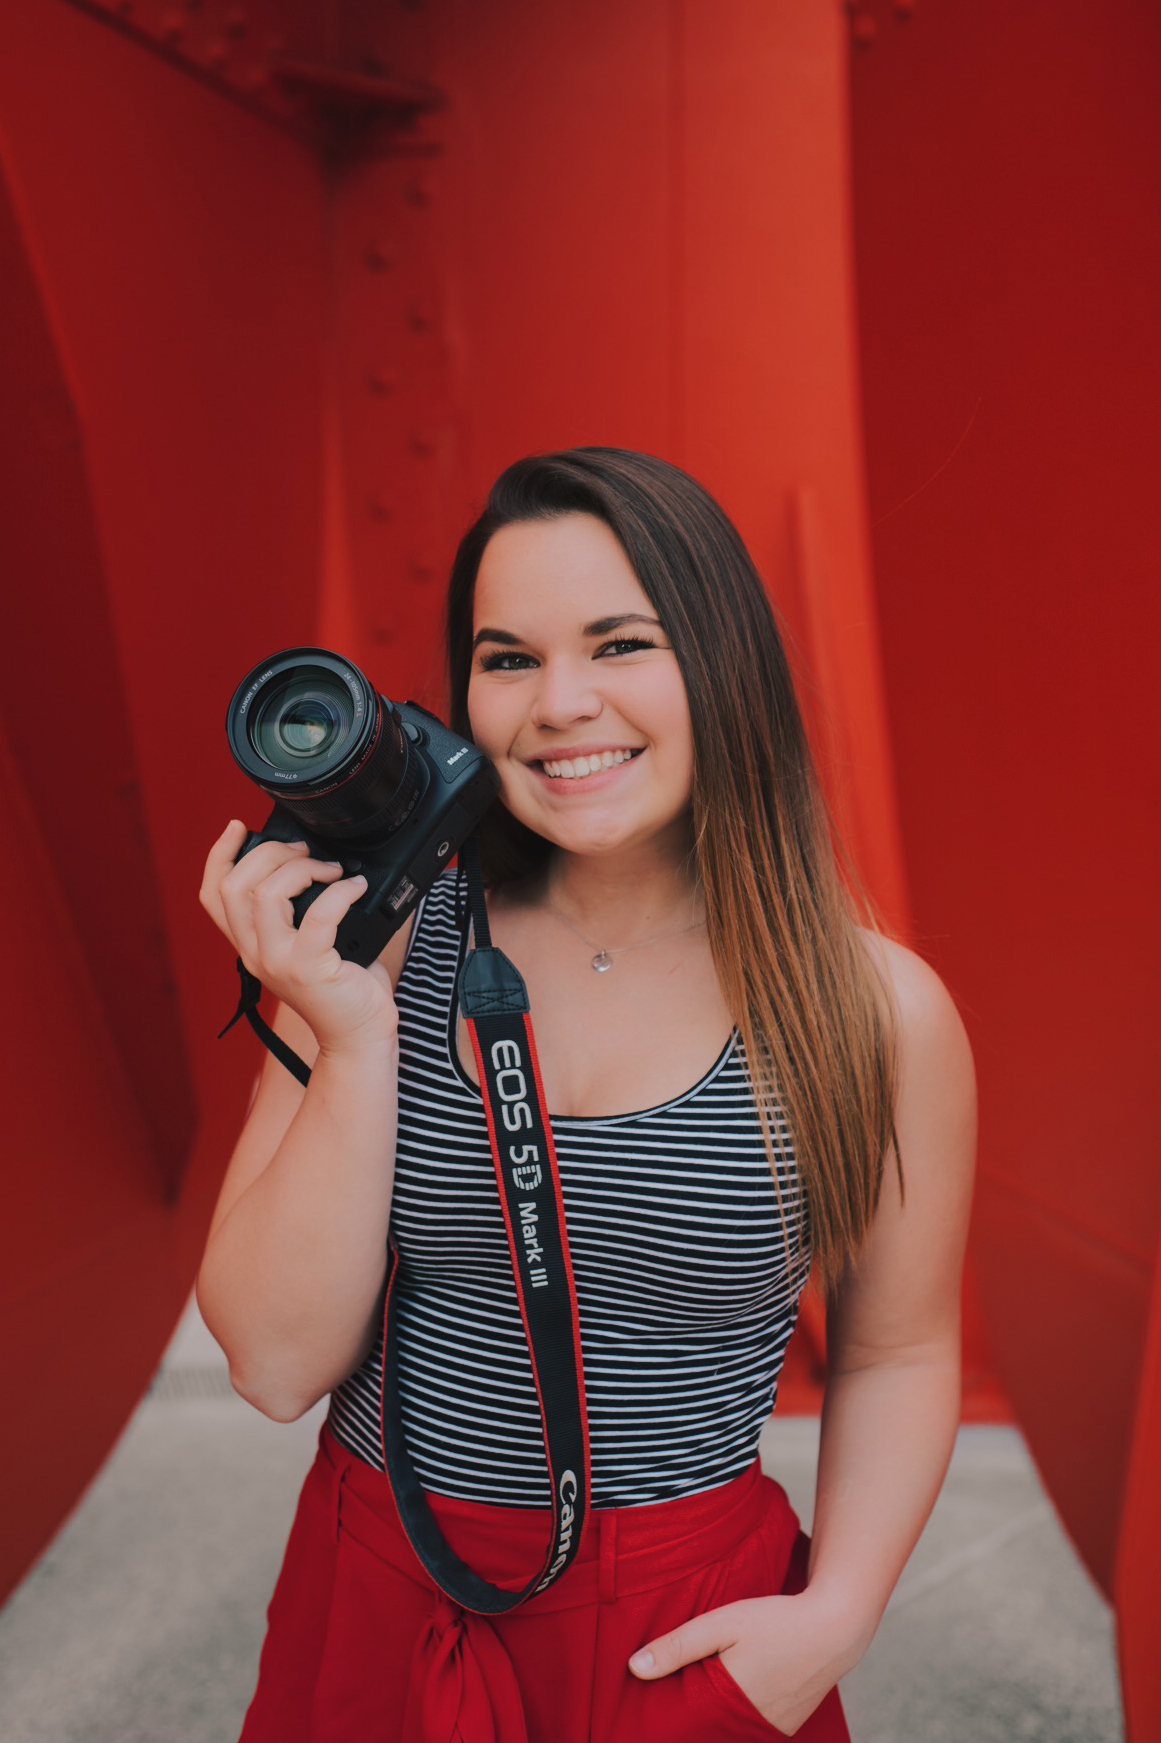 BIO - Thank you for visiting my photography site! I'm Valerie Wojciechowski (but Wojciechowski is intimidating…so you can just say Wojo.) I graduated from Grand Valley State University in 2019 with a Bachelors of Arts in Photography. I am currently a full time adjunct photographer for Grand Valley State University where I shoot for the Grand Valley Magazine and other University publications. I love ALL types of photography, which is why I have found my place as a photographer in higher education. Higher ed photography is a little bit of everything, it's a little bit of portraiture, it's a little bit of architecture, little bit of sports, little bit of editorial, little bit of photojournalism, little bit of marketing. I never get bored, and I always have the opportunity to challenge myself.West Michigan is my home. I have a cat, his name is Kathleen. If I had one wish, I'd ask for pizza and wine to have no calories. I love a good philosophical debate almost as much as I love to watch Fixer Upper. I'm that girl who gets way too excited to write events in her planner. Oh yeah, and photography… lots and lots of photography. Need to know more? Shoot me a message!